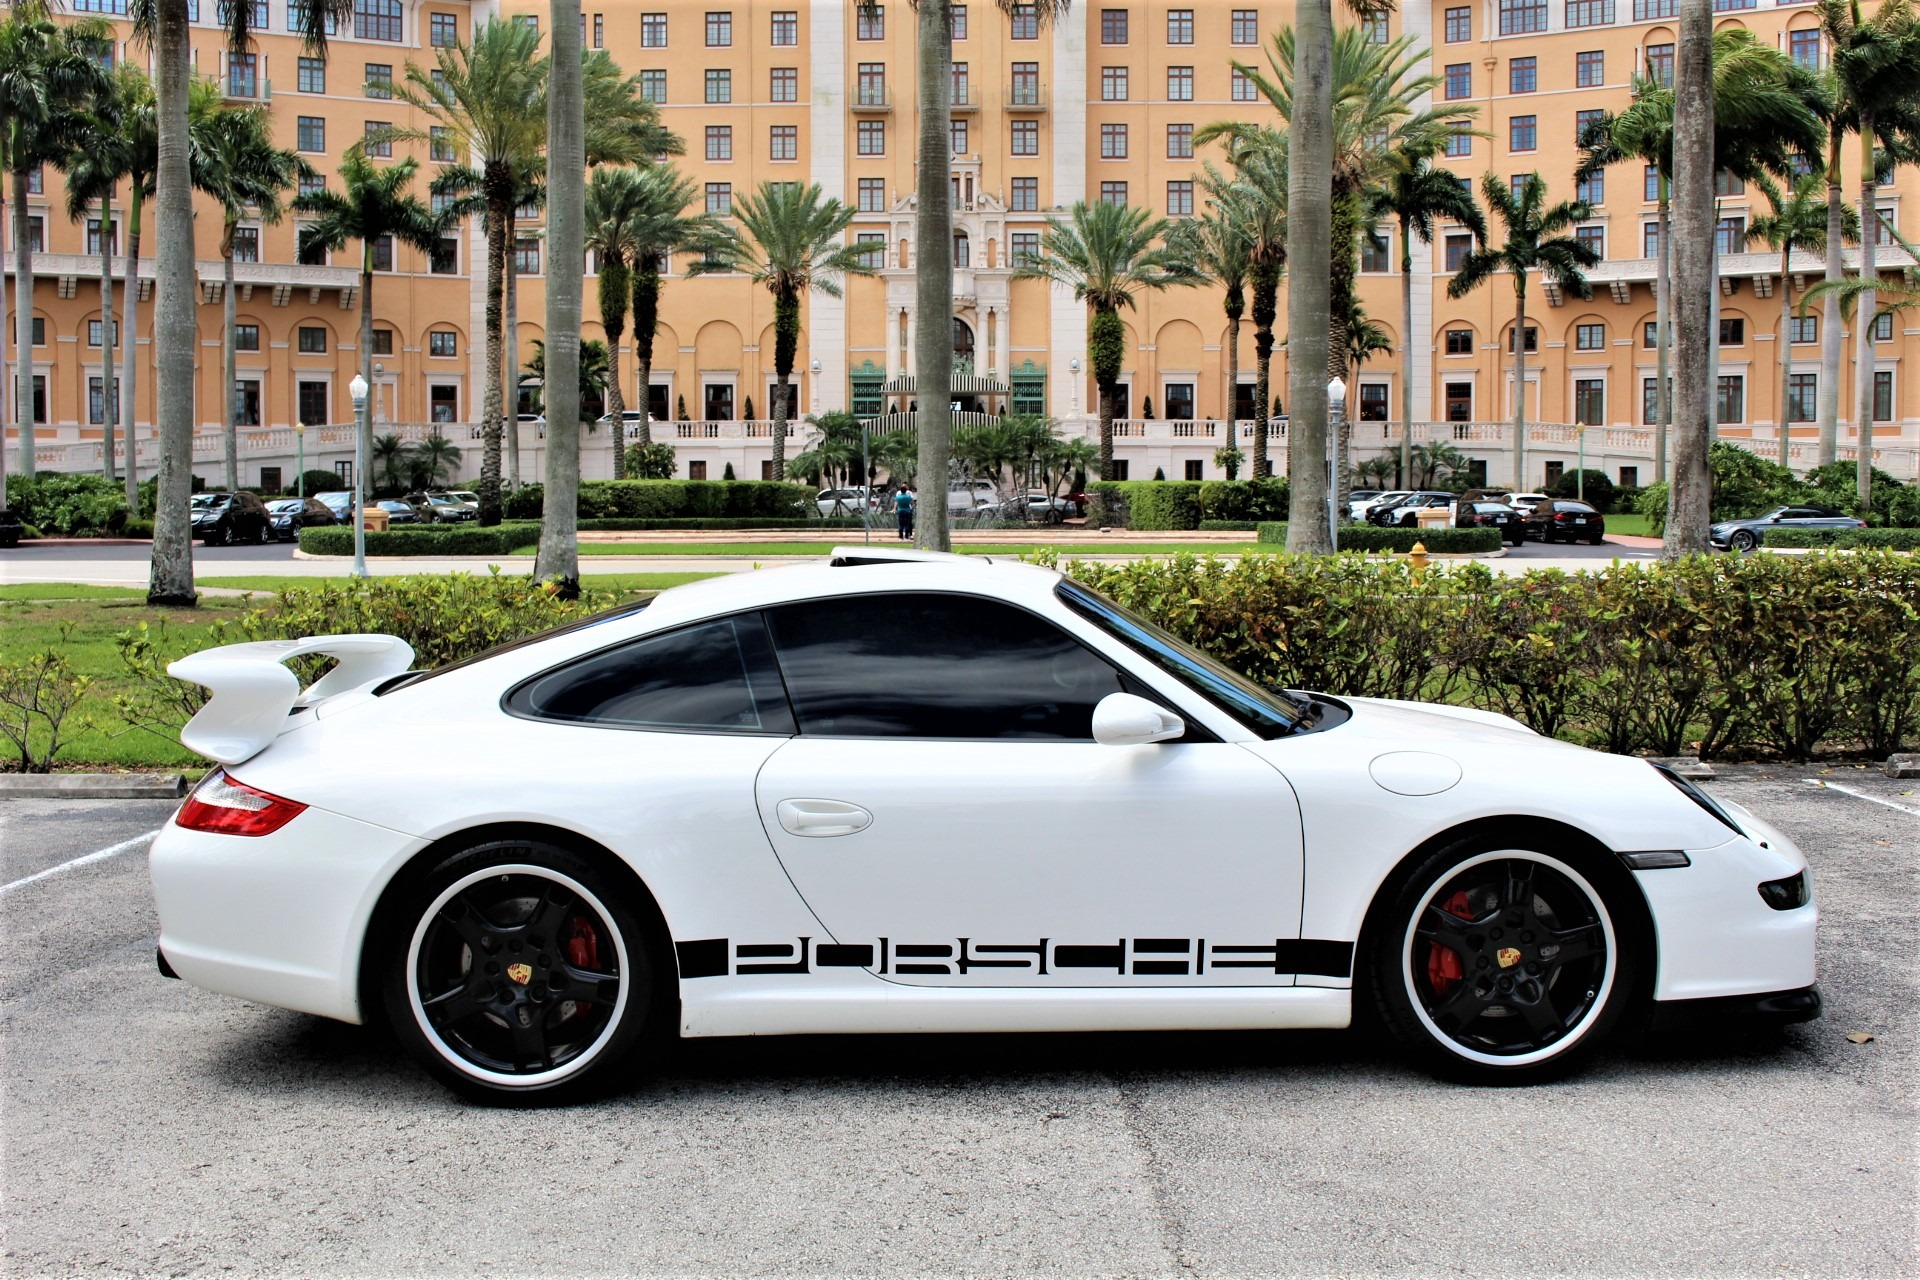 Used 2008 Porsche 911 Carrera S for sale $69,850 at The Gables Sports Cars in Miami FL 33146 3